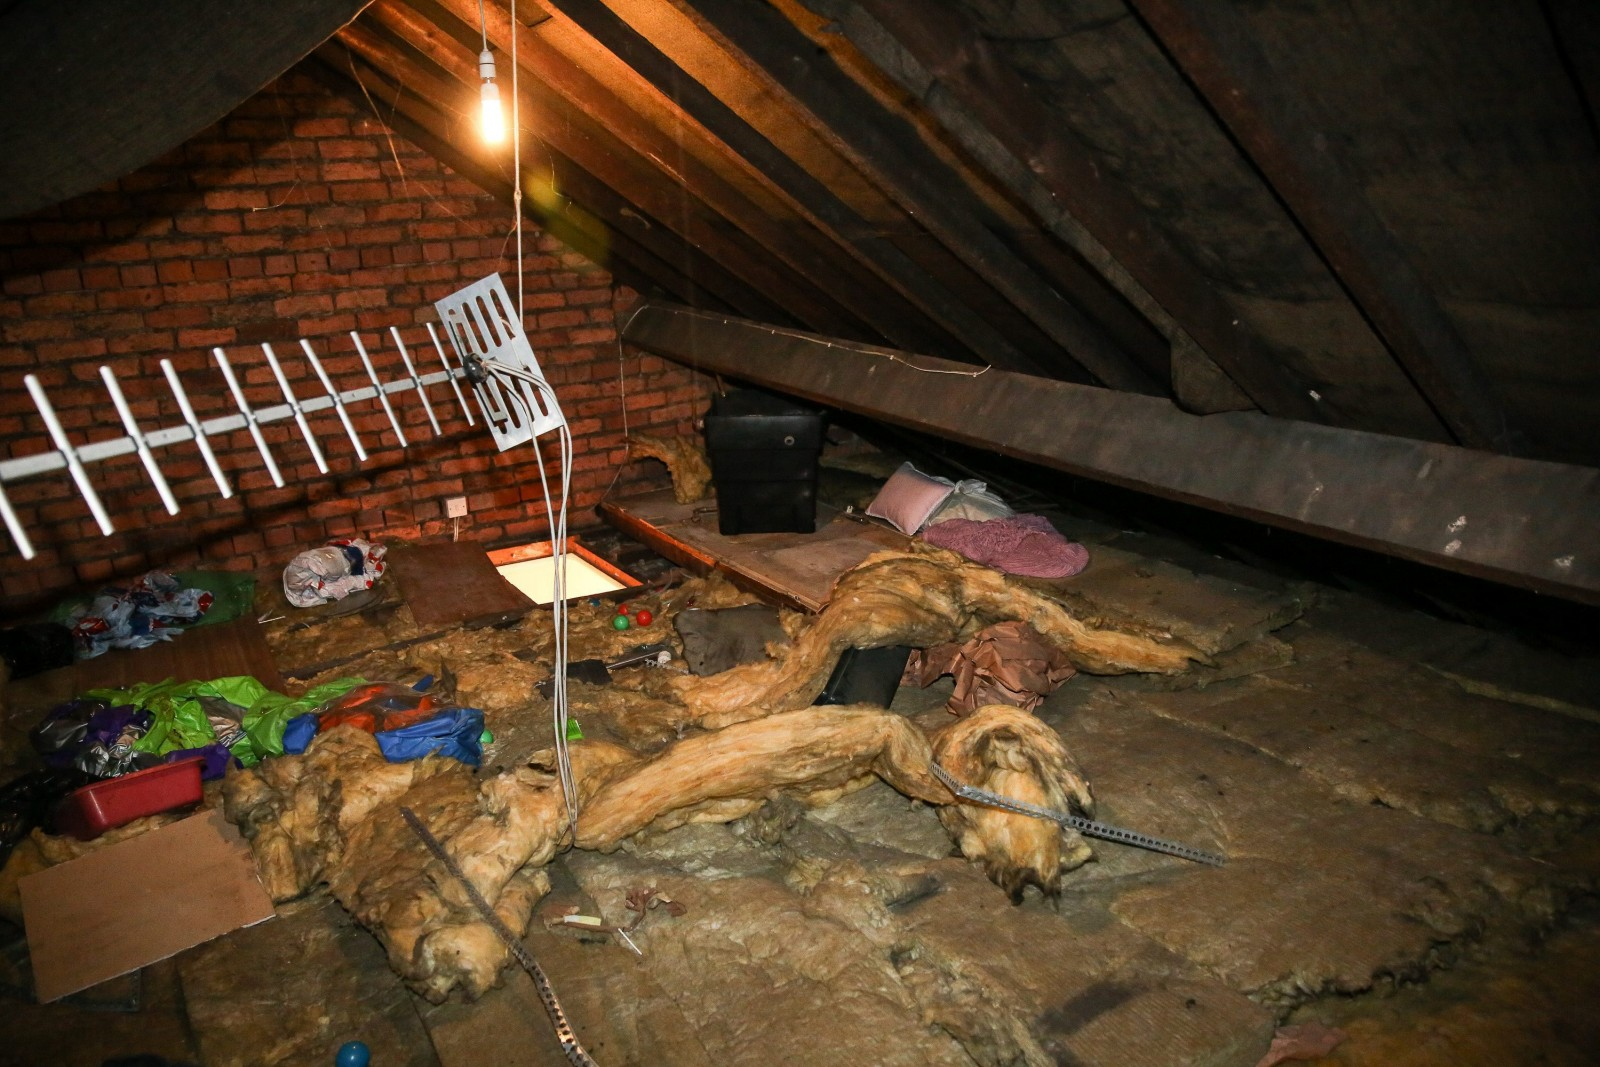 Ex-boyfriend crept into woman's house and LIVED in her ATTIC